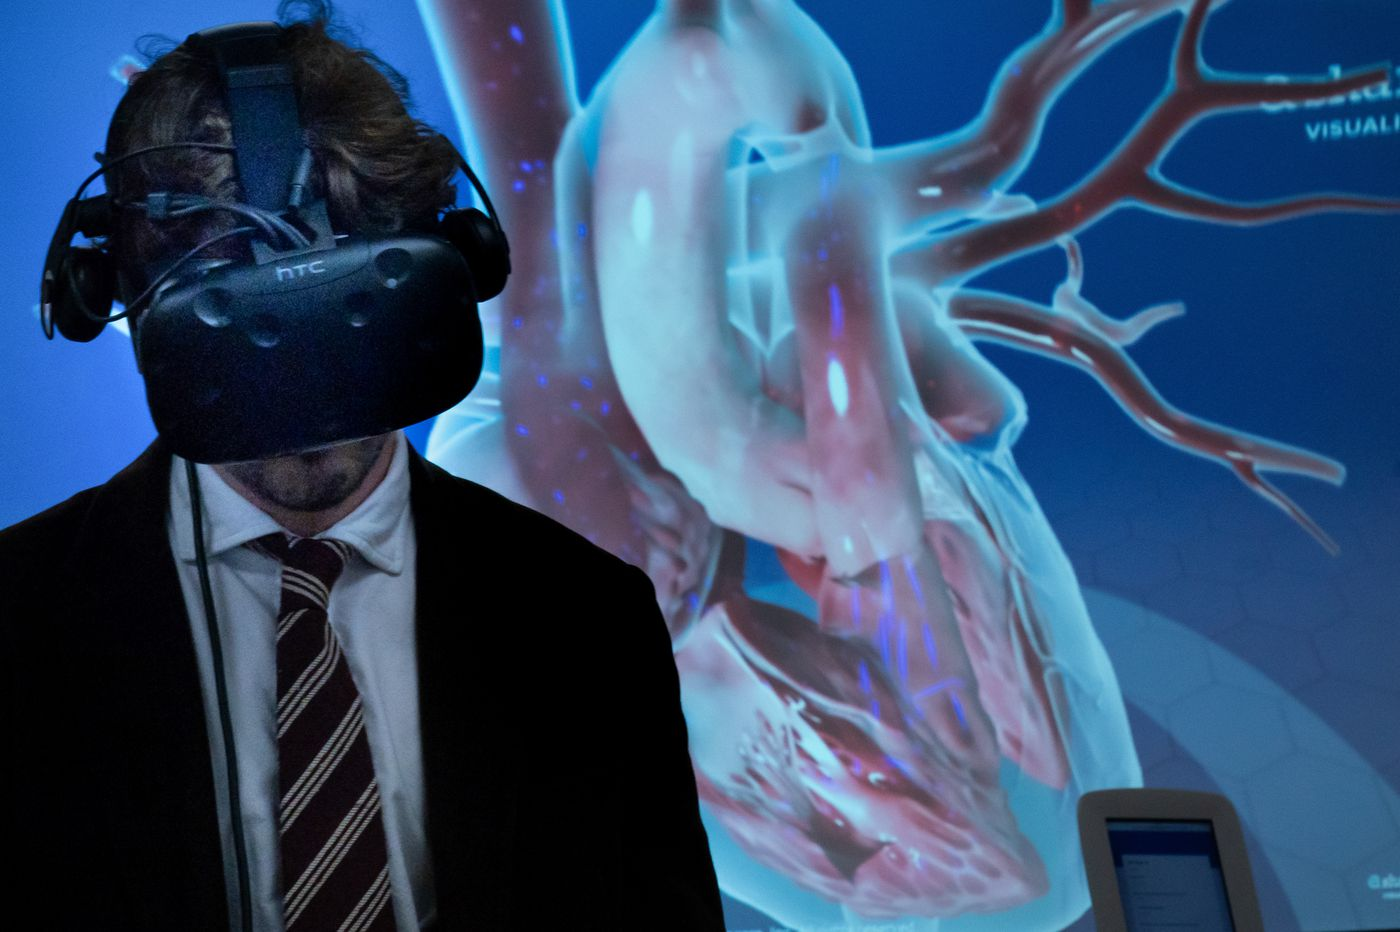 81eeb54c285c Virtual reality is more than a game at local hospitals